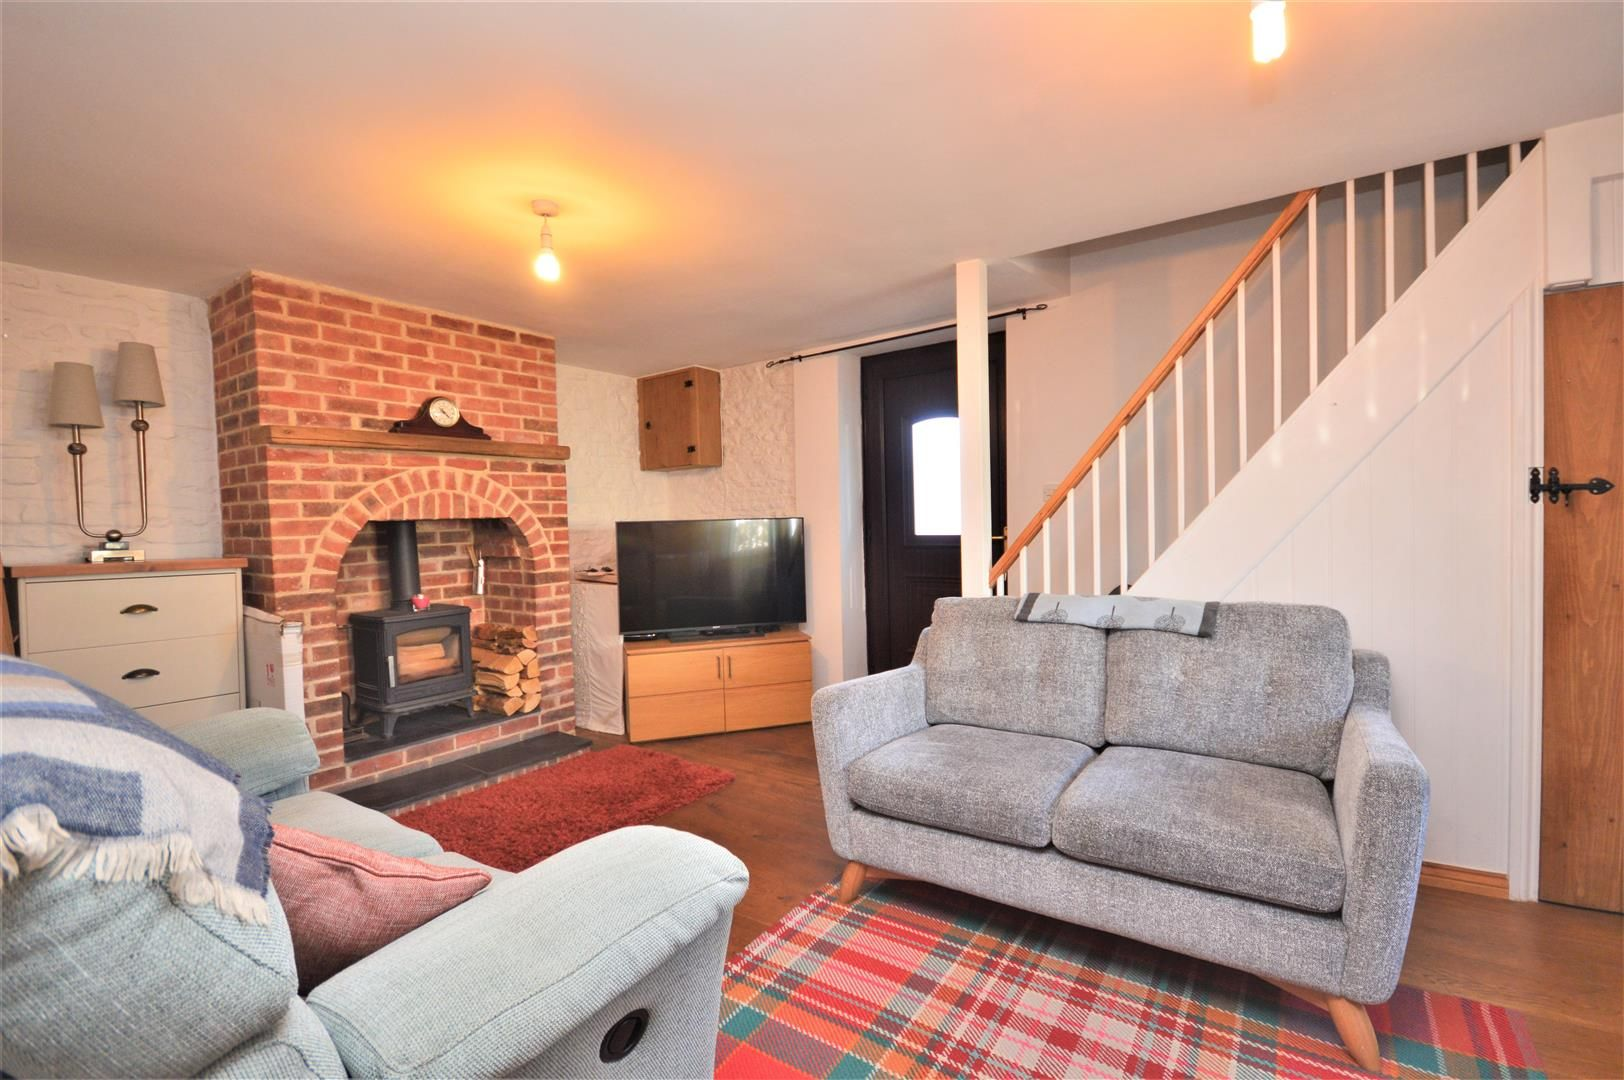 1 bed end-of-terrace for sale in Callow 4